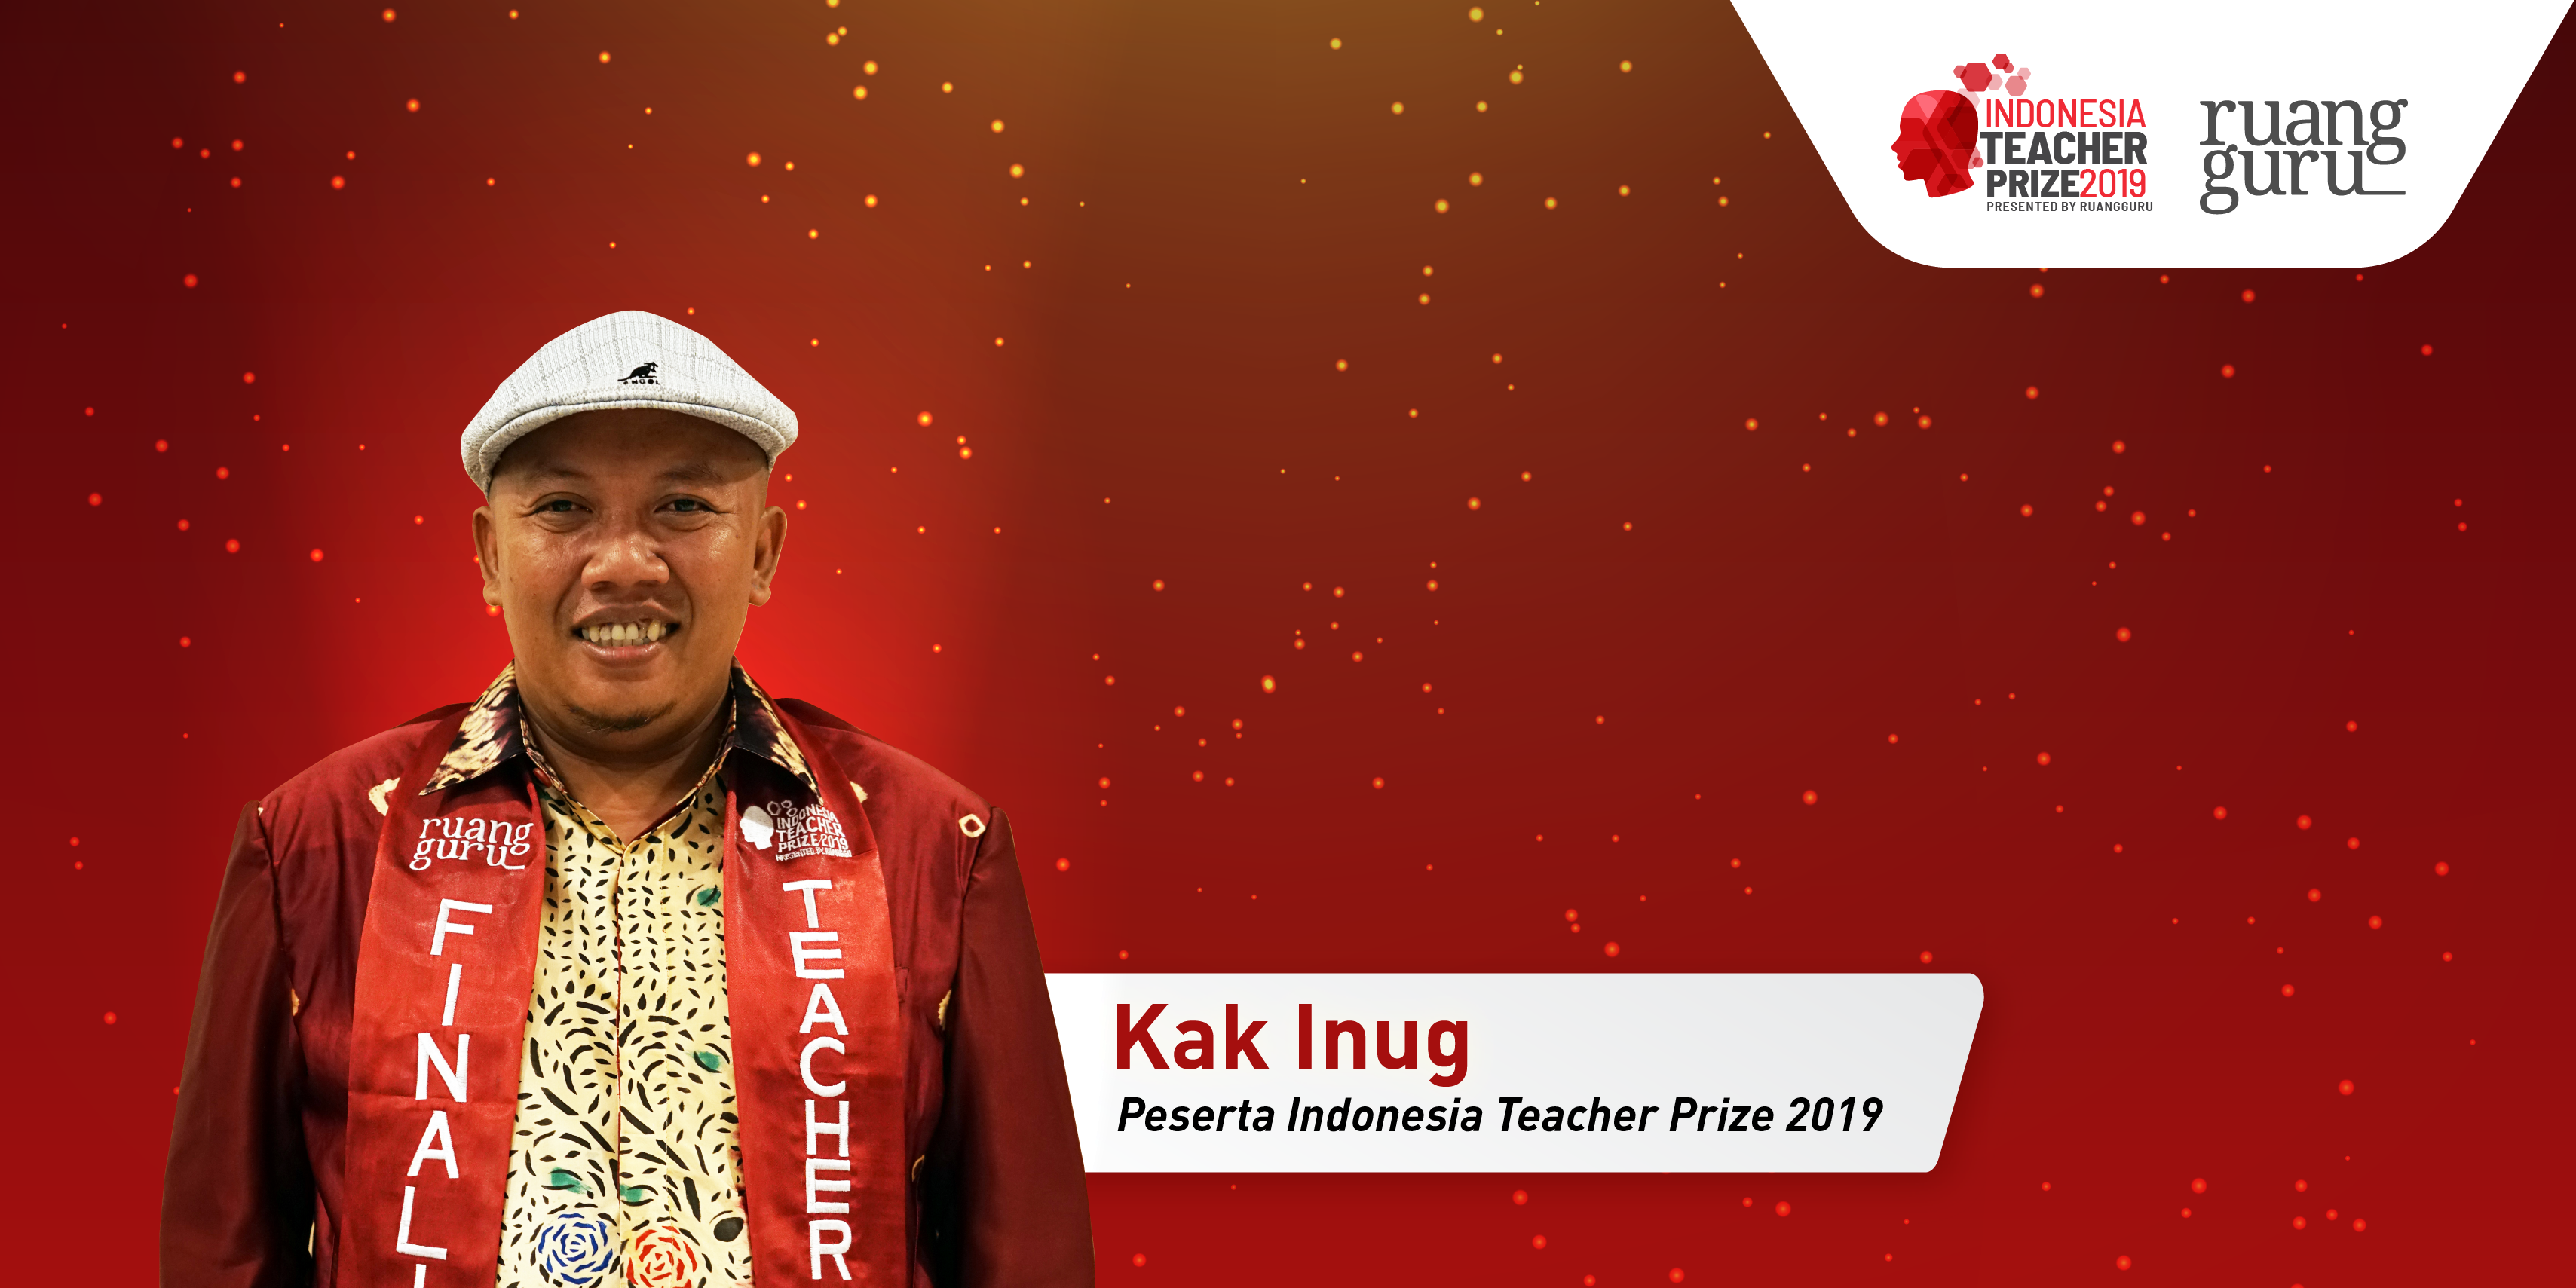 Indonesia Teacher Prize - Inug